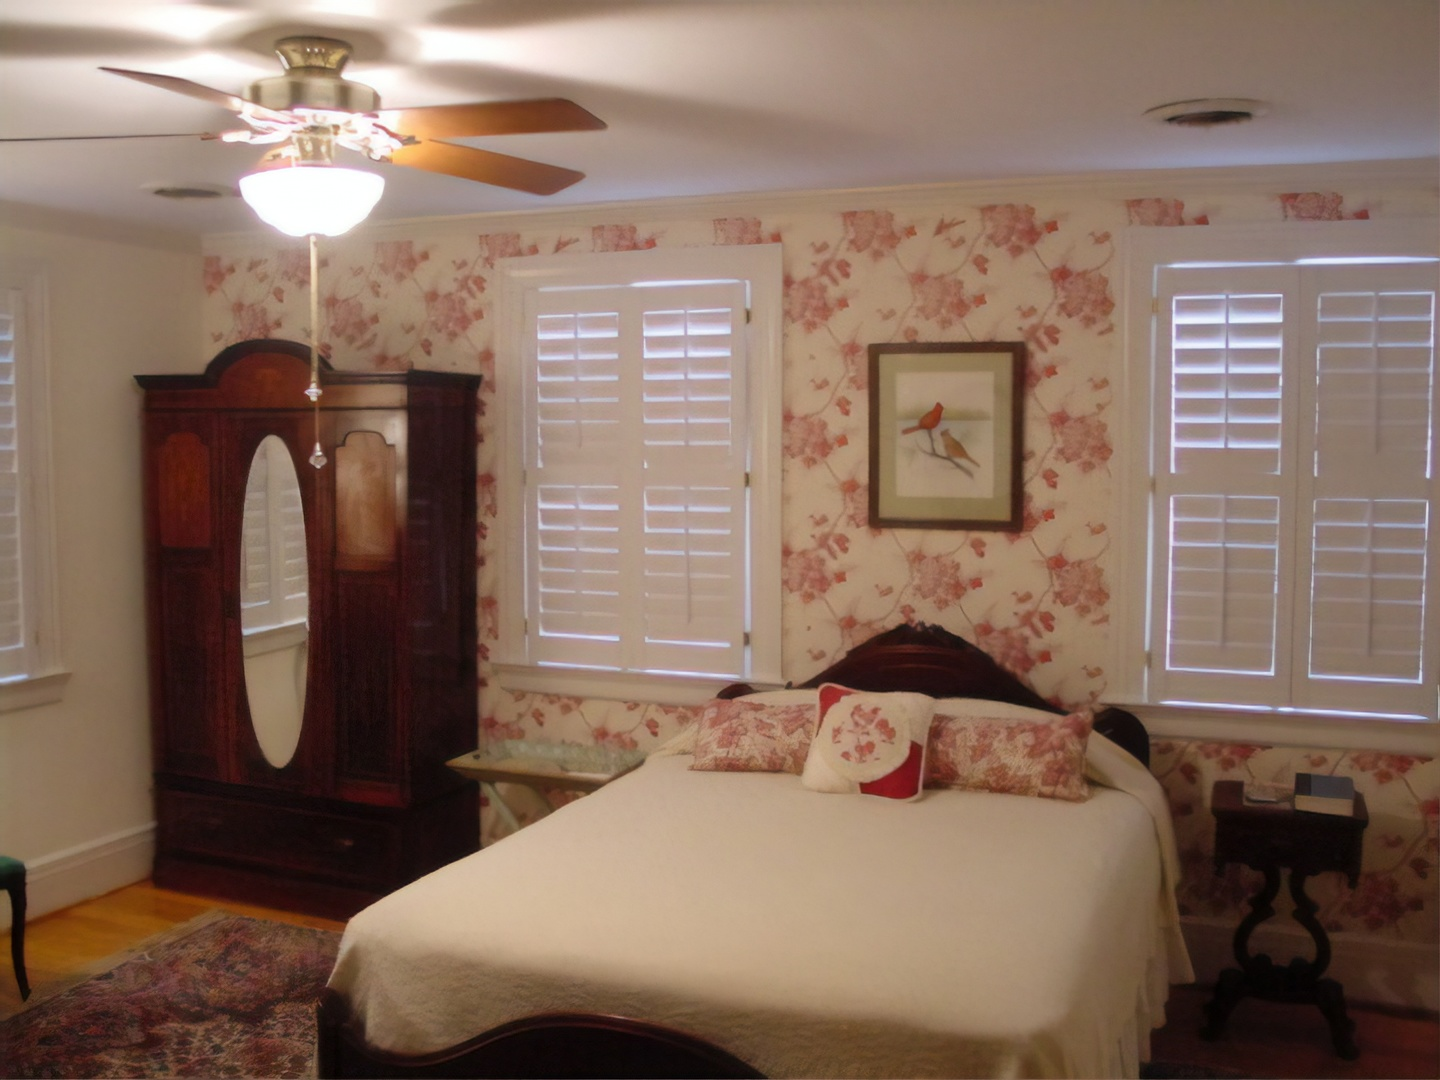 Fuquay-Varina Bed and Breakfast